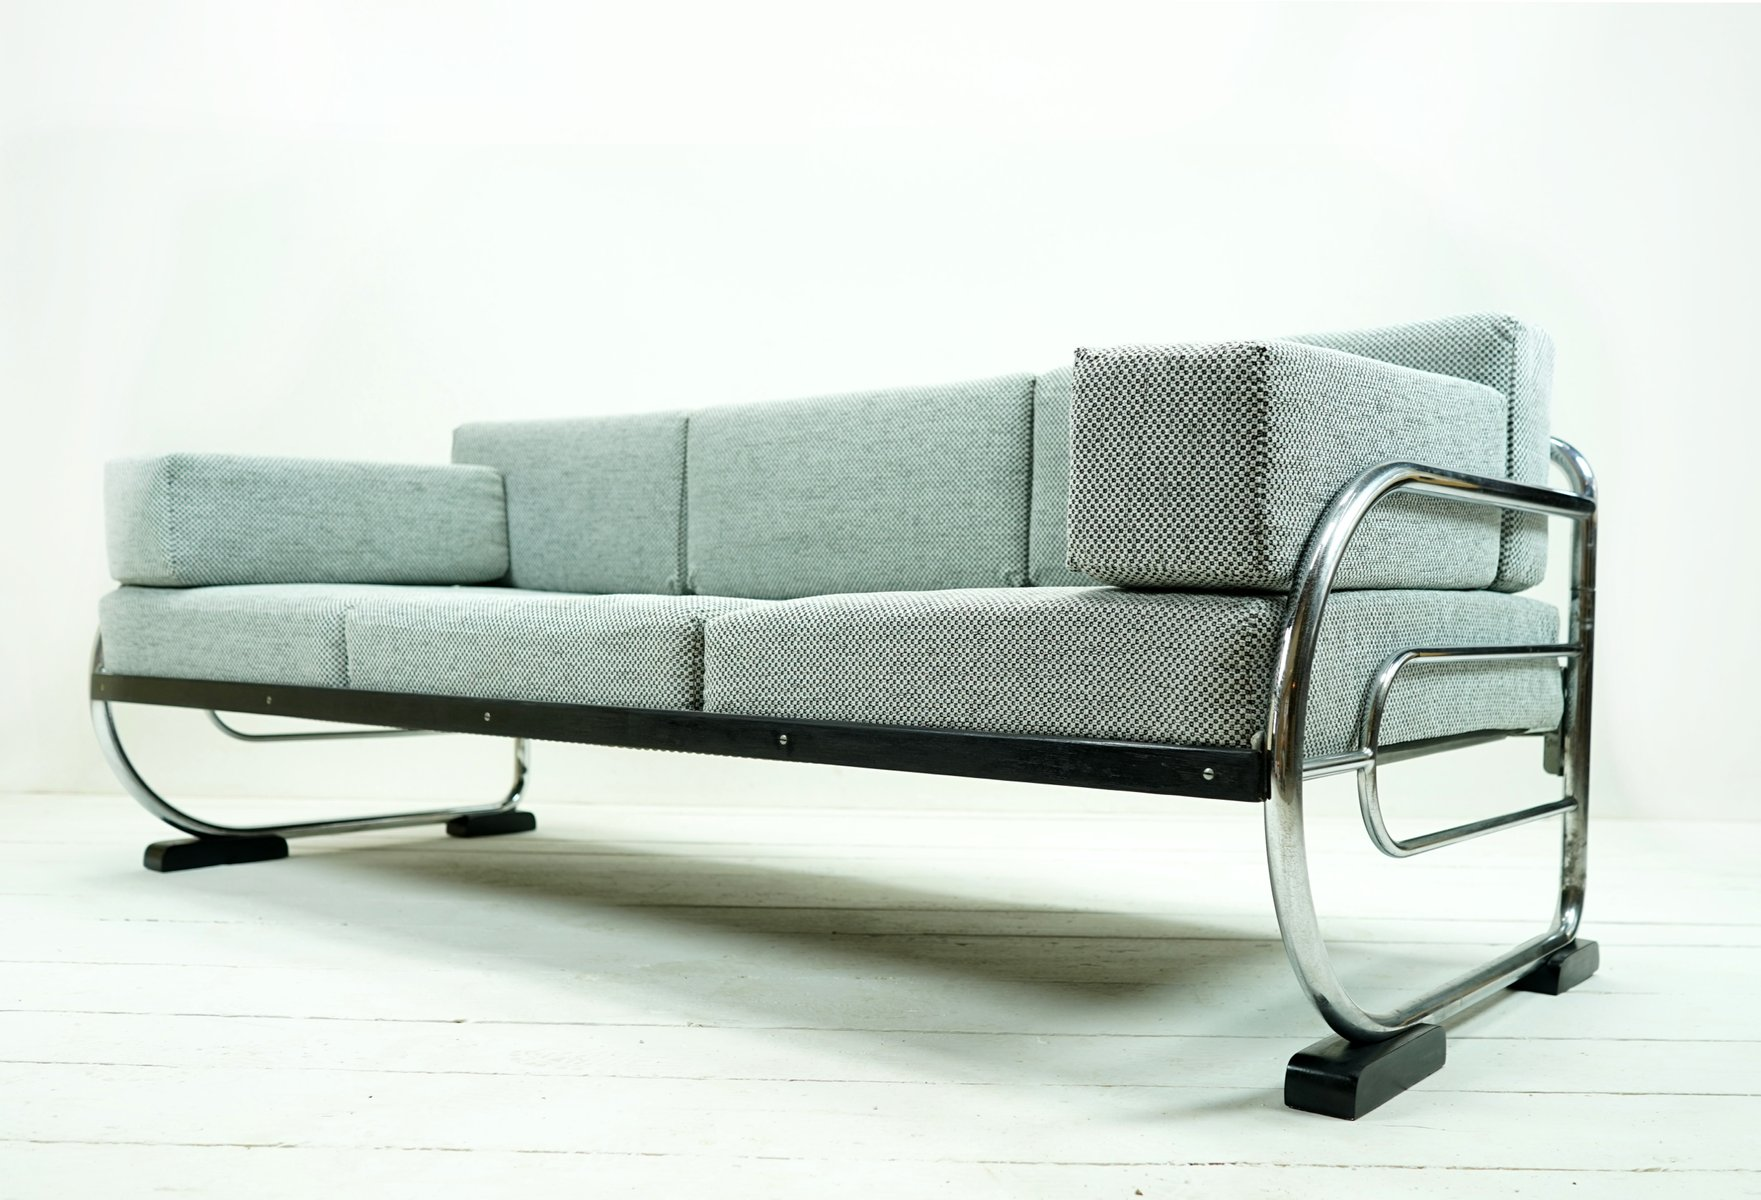 Vintage Bauhaus Sofa Daybed by Hynek Gottwald for sale at Pamono